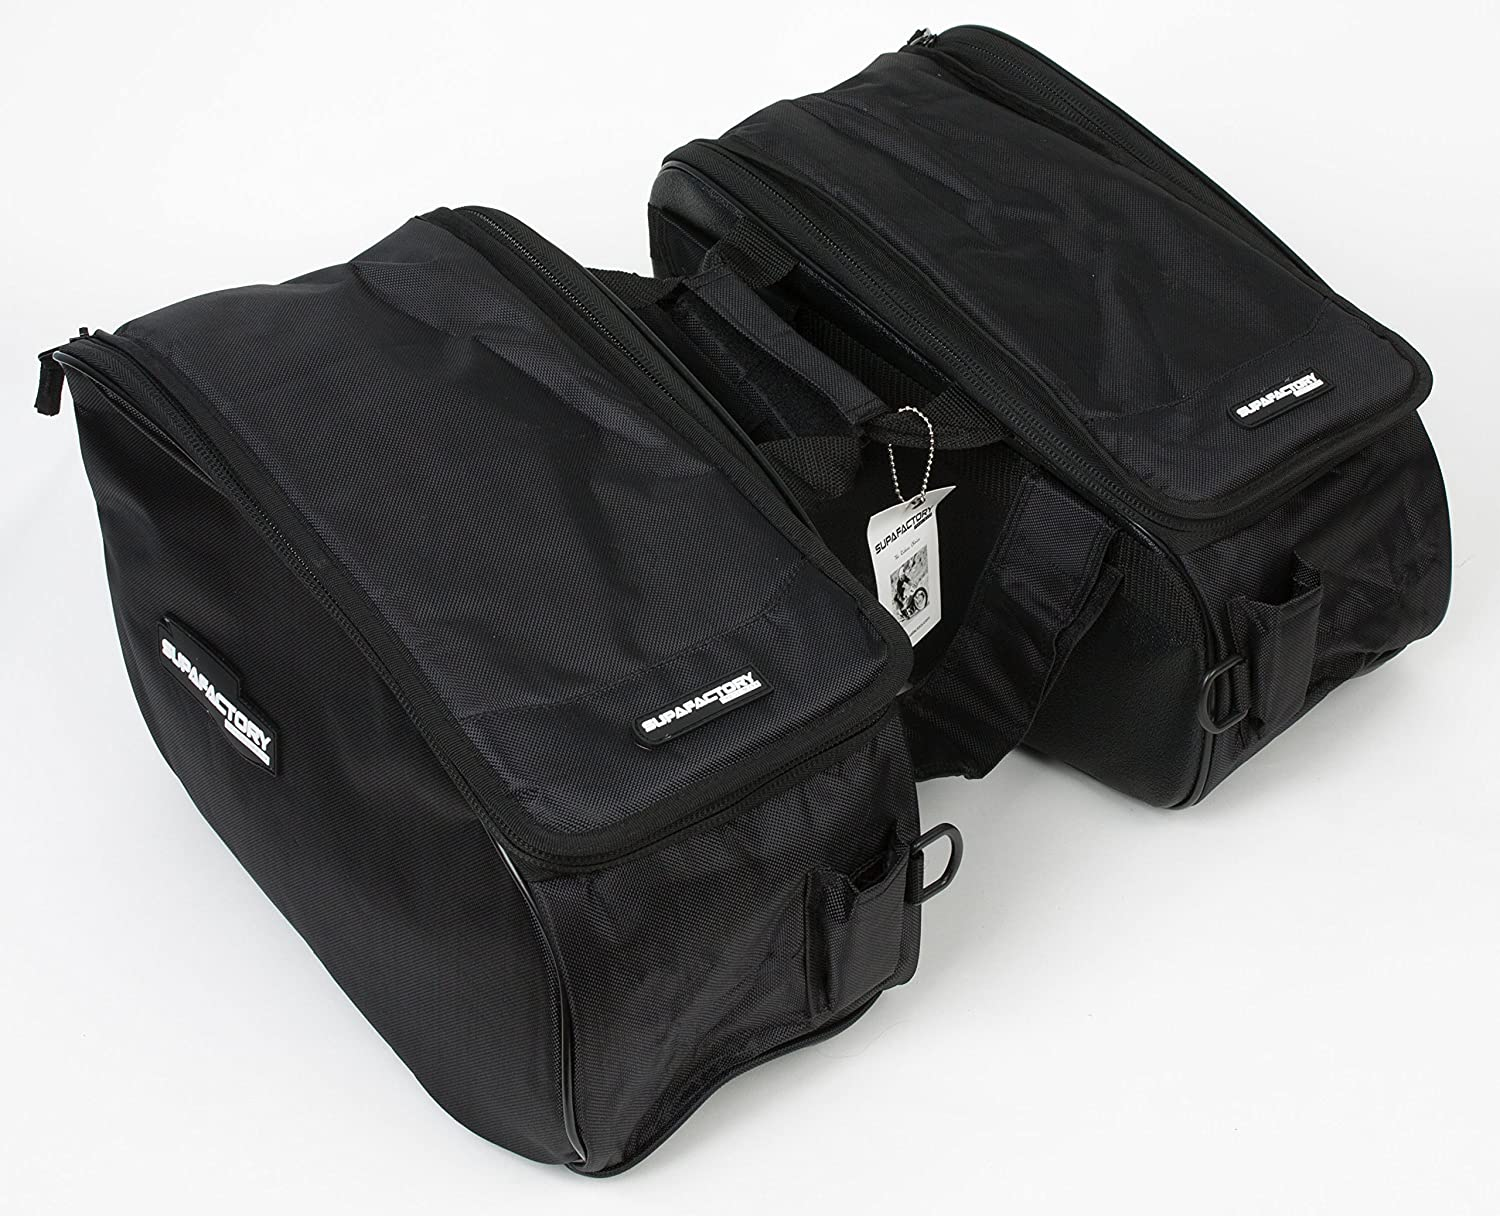 Supafactory Saddle Bags/Panniers For Motorcycles & Motorbikes (SF-SB-A1) Supafactory®